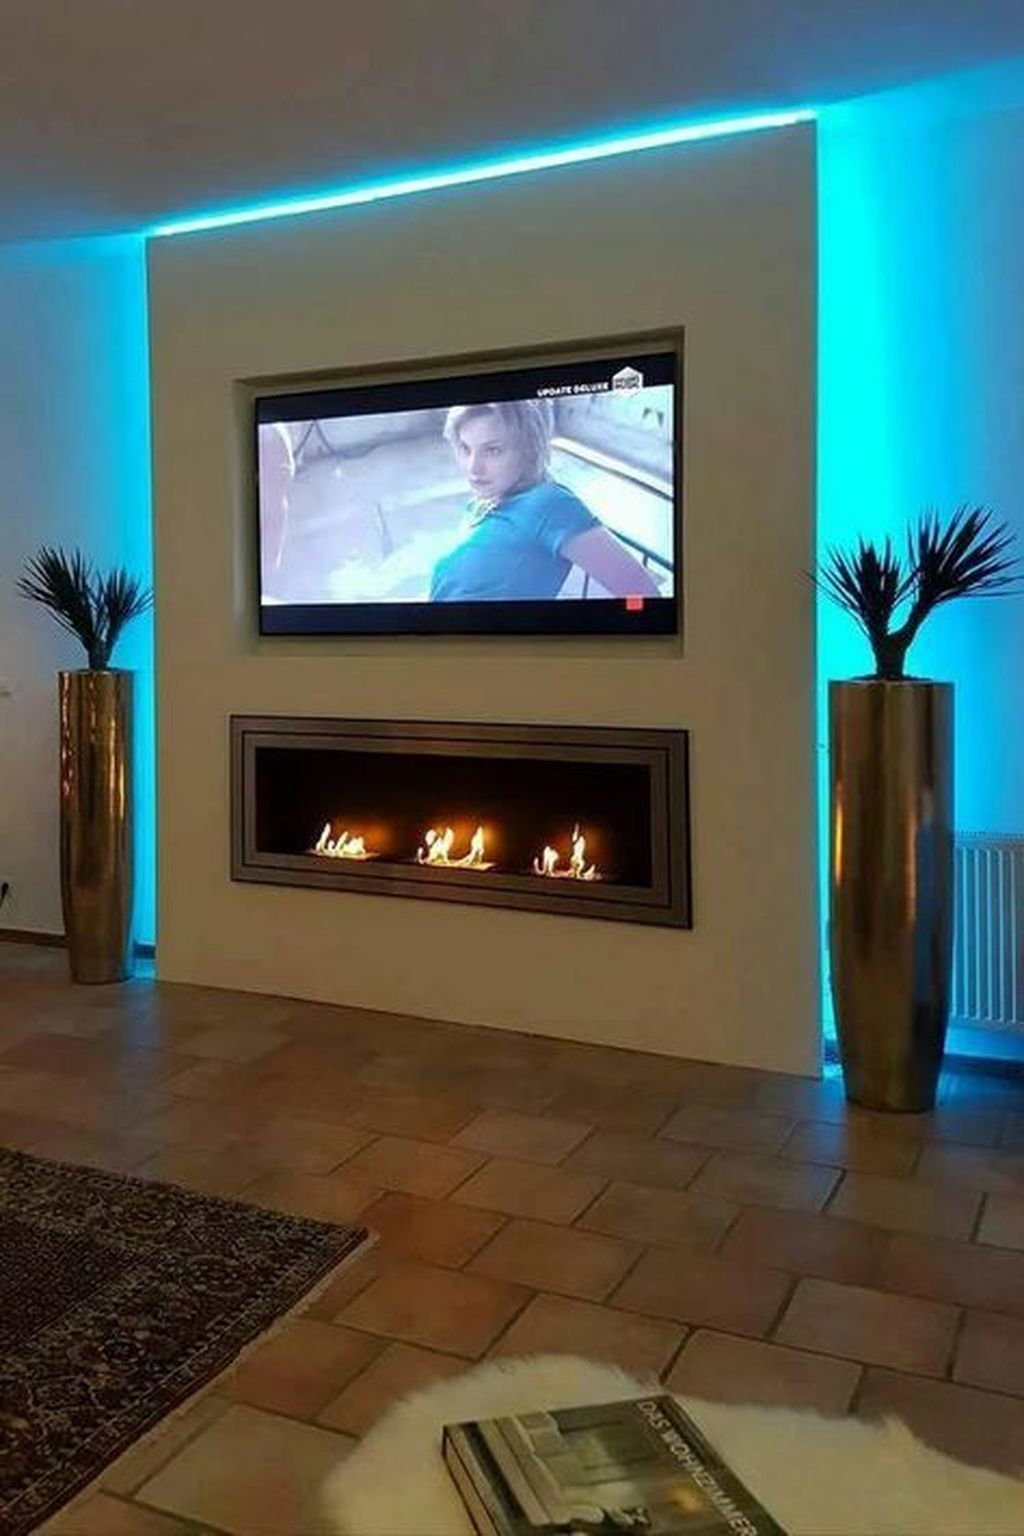 Mobile Tv Con Camino inspiring living room with fireplace decor ideas which makes